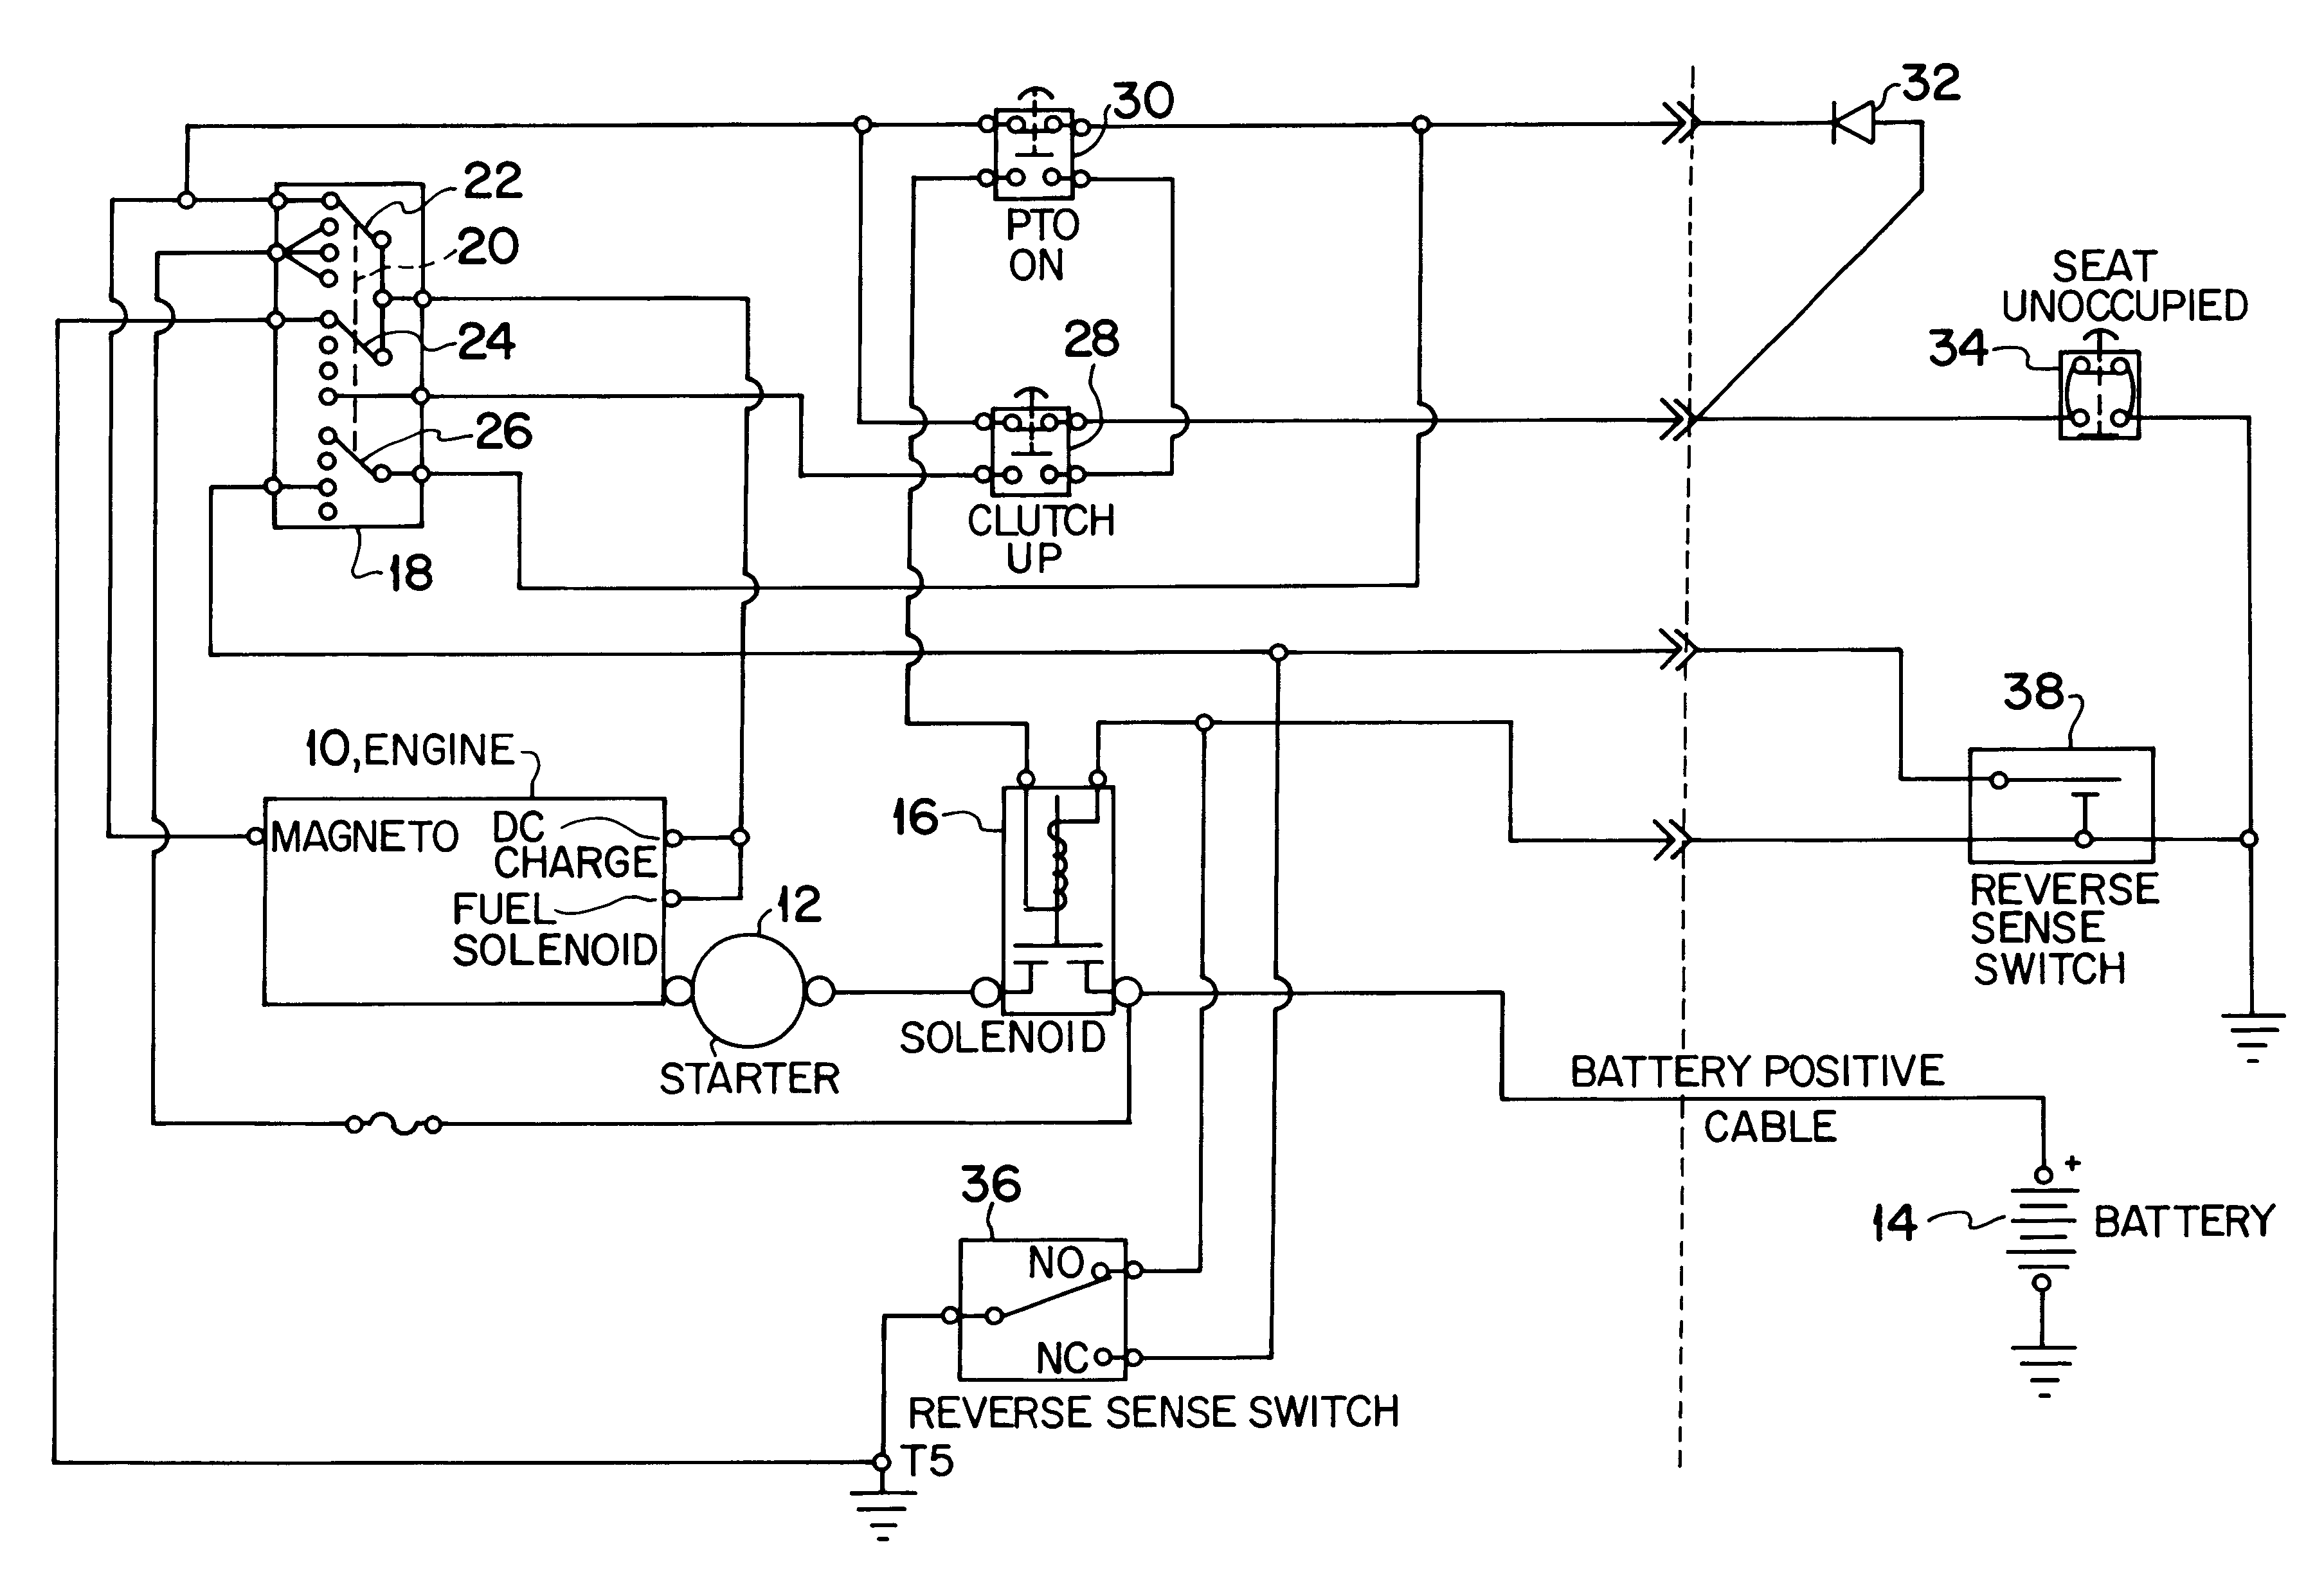 US06437458 20020820 D00000 patent us6437458 engine control circuit for a lawn tractor delta systems ignition switch wiring diagram at alyssarenee.co